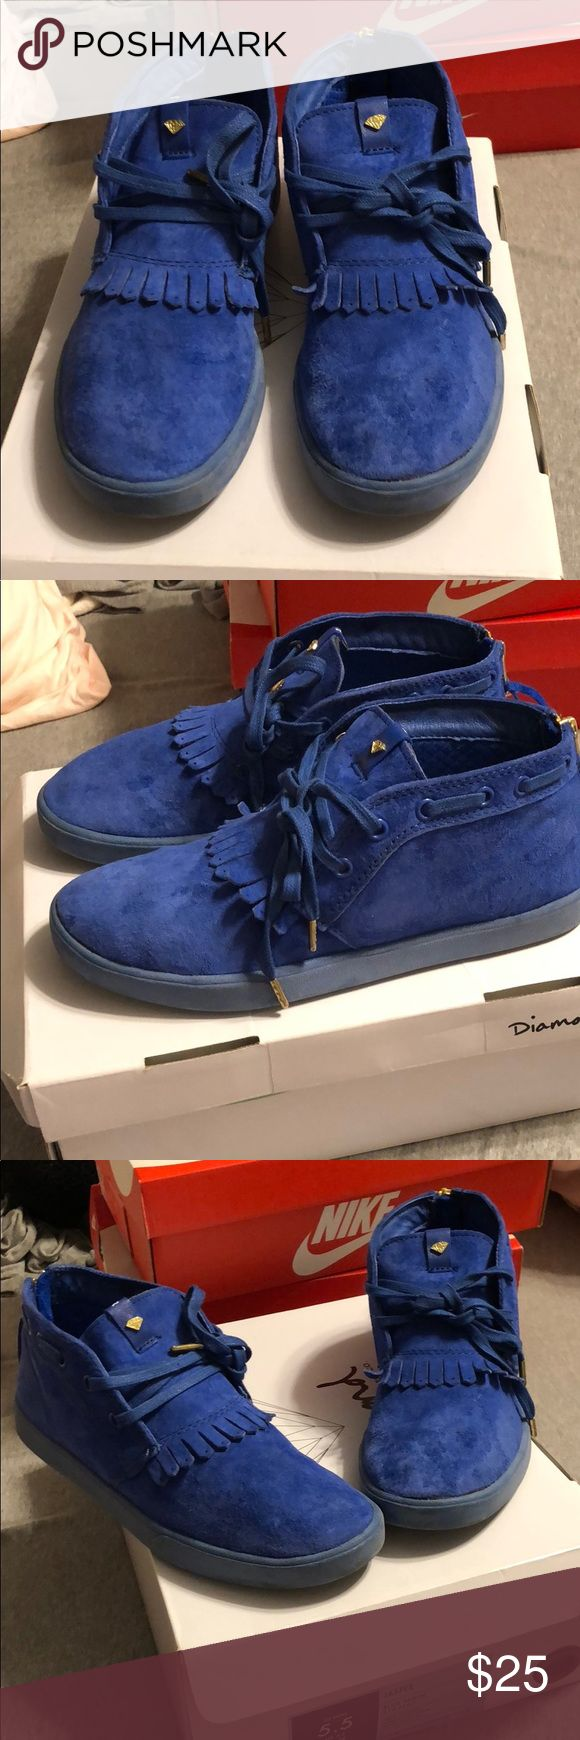 Diamond Supply Co. Jasper Blue Suede Blue suede shoes by Diamond Supply Company. Sz 5.5 in mens which is a Women's 7 Diamond Supply Co. Shoes Sneakers